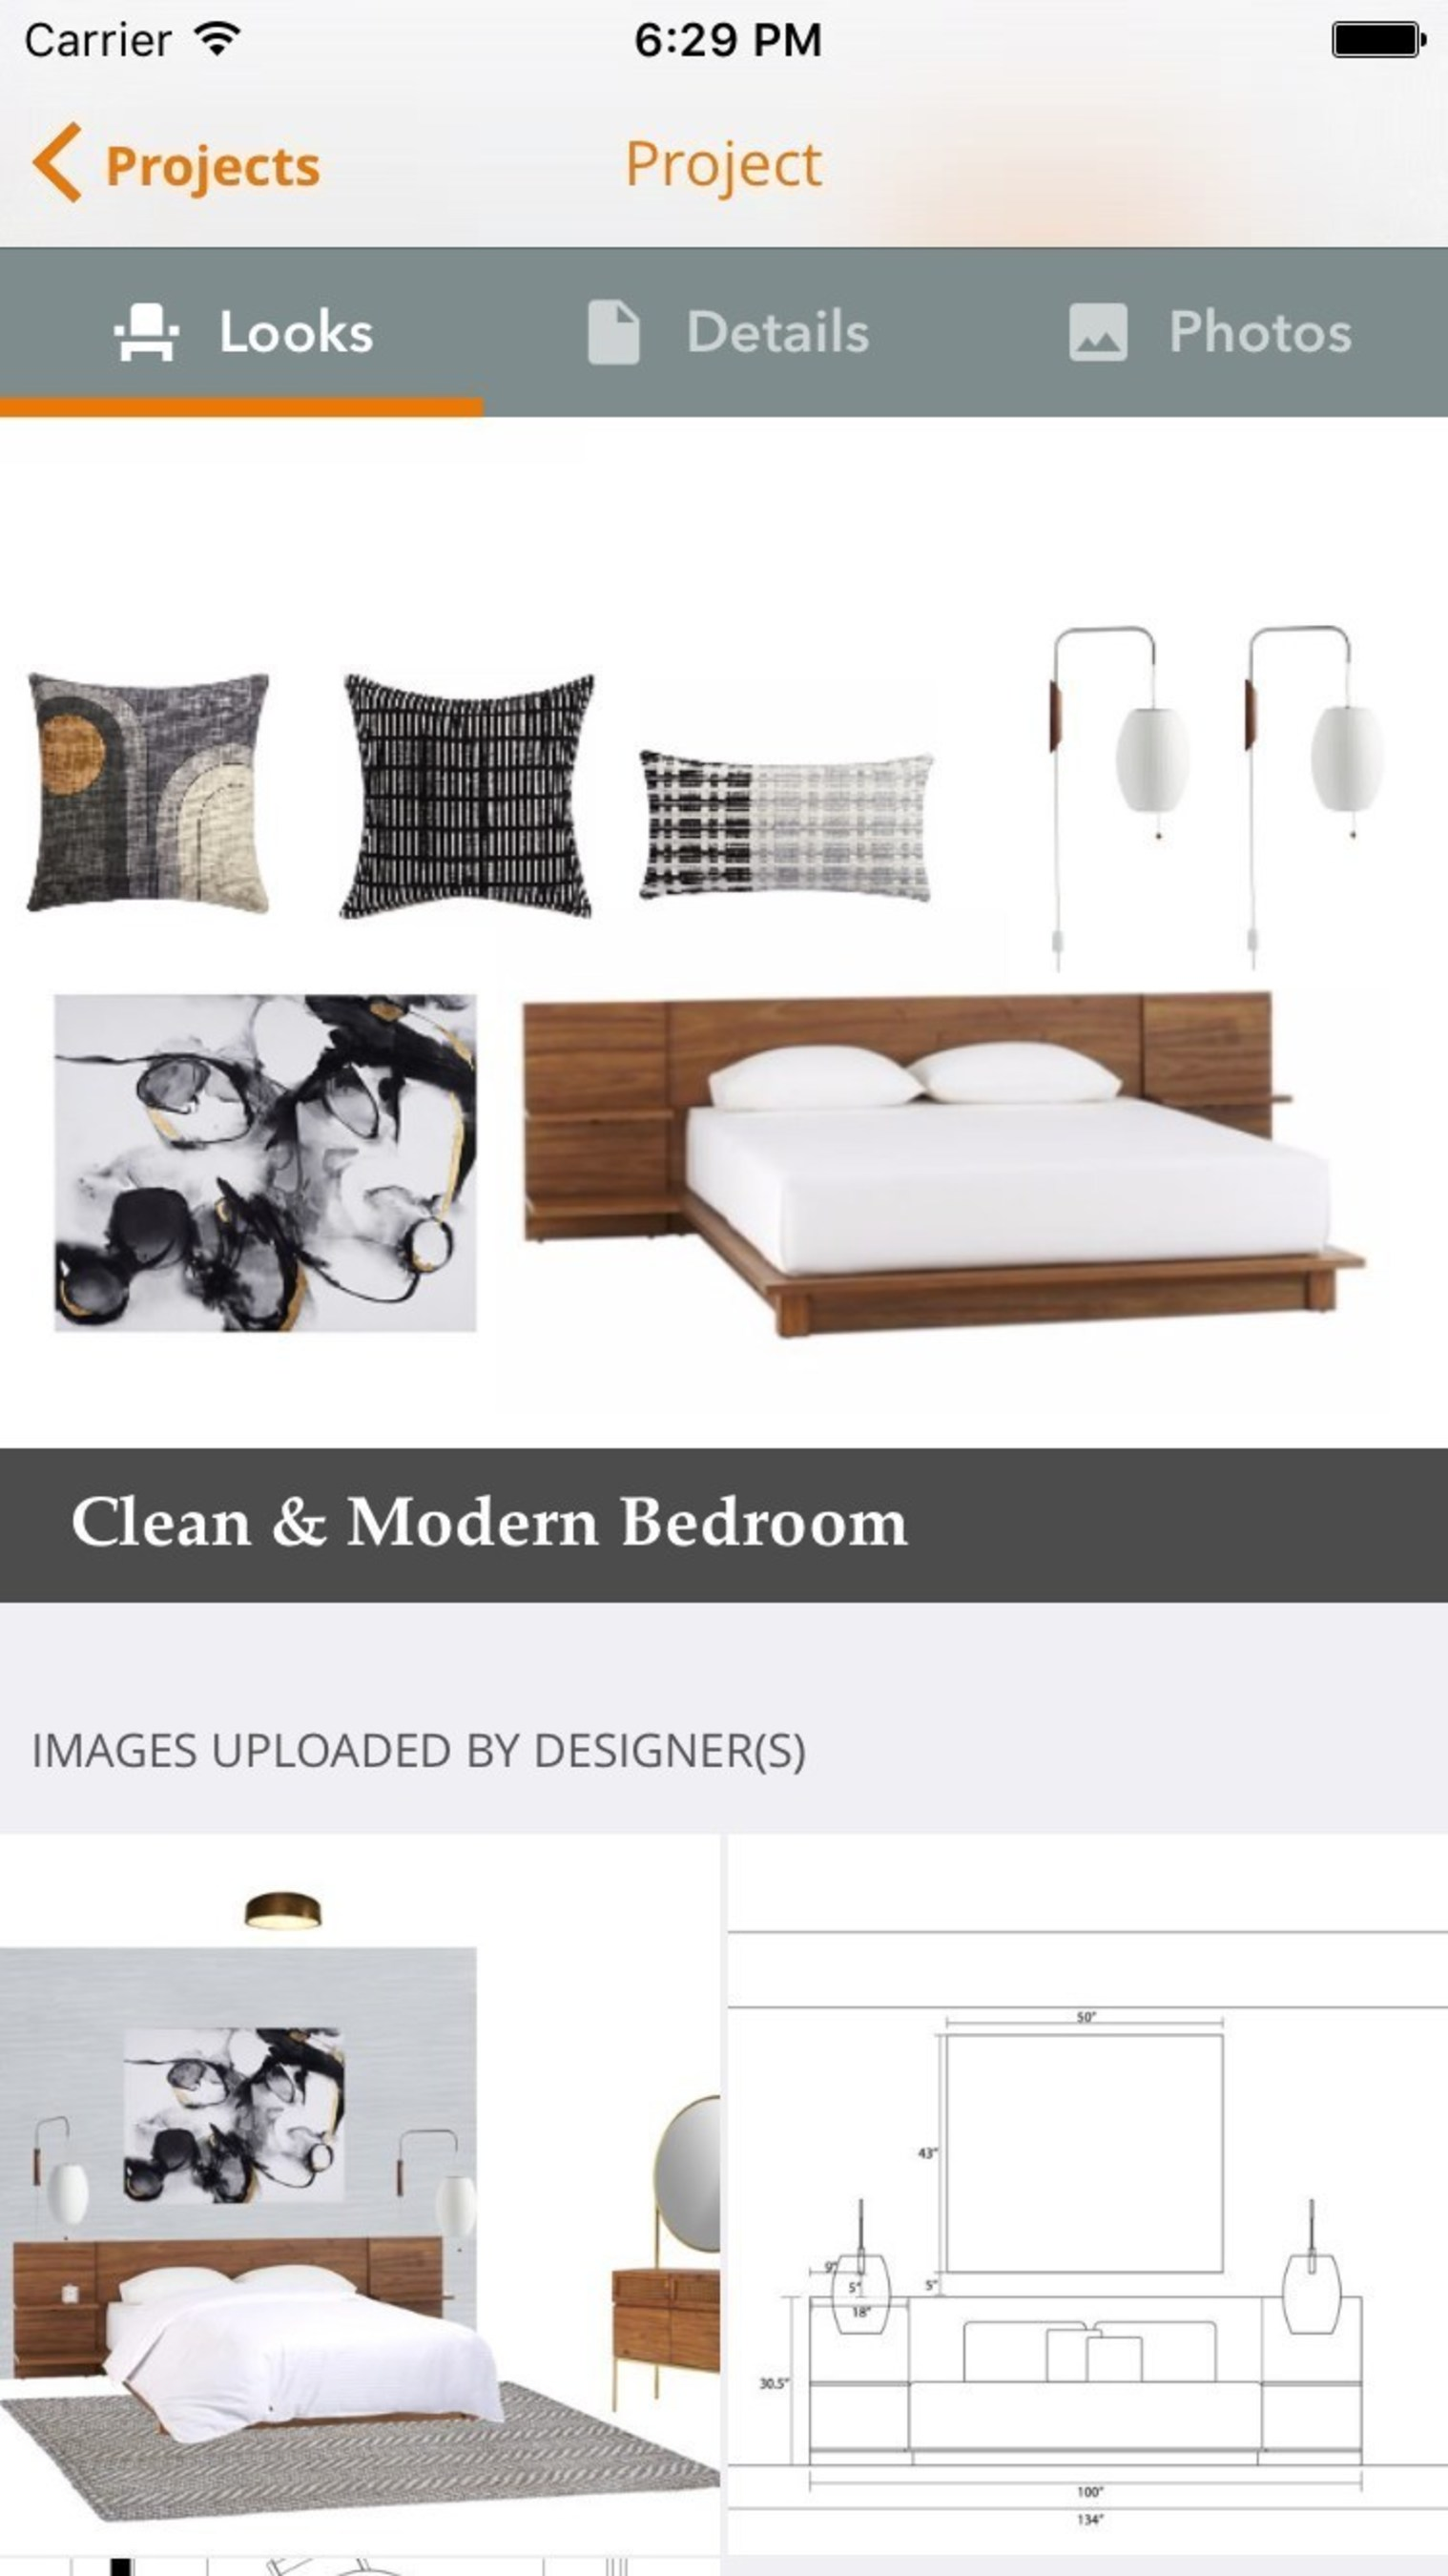 On the NousDecor app, a user can review completed looks, 3D renderings, design elevations and more all on the mobile device. In addition to uploading photos of rooms or inspiration via the app, this real-time communication with the design team makes the experience more streamlined and optimizes for beautiful design.